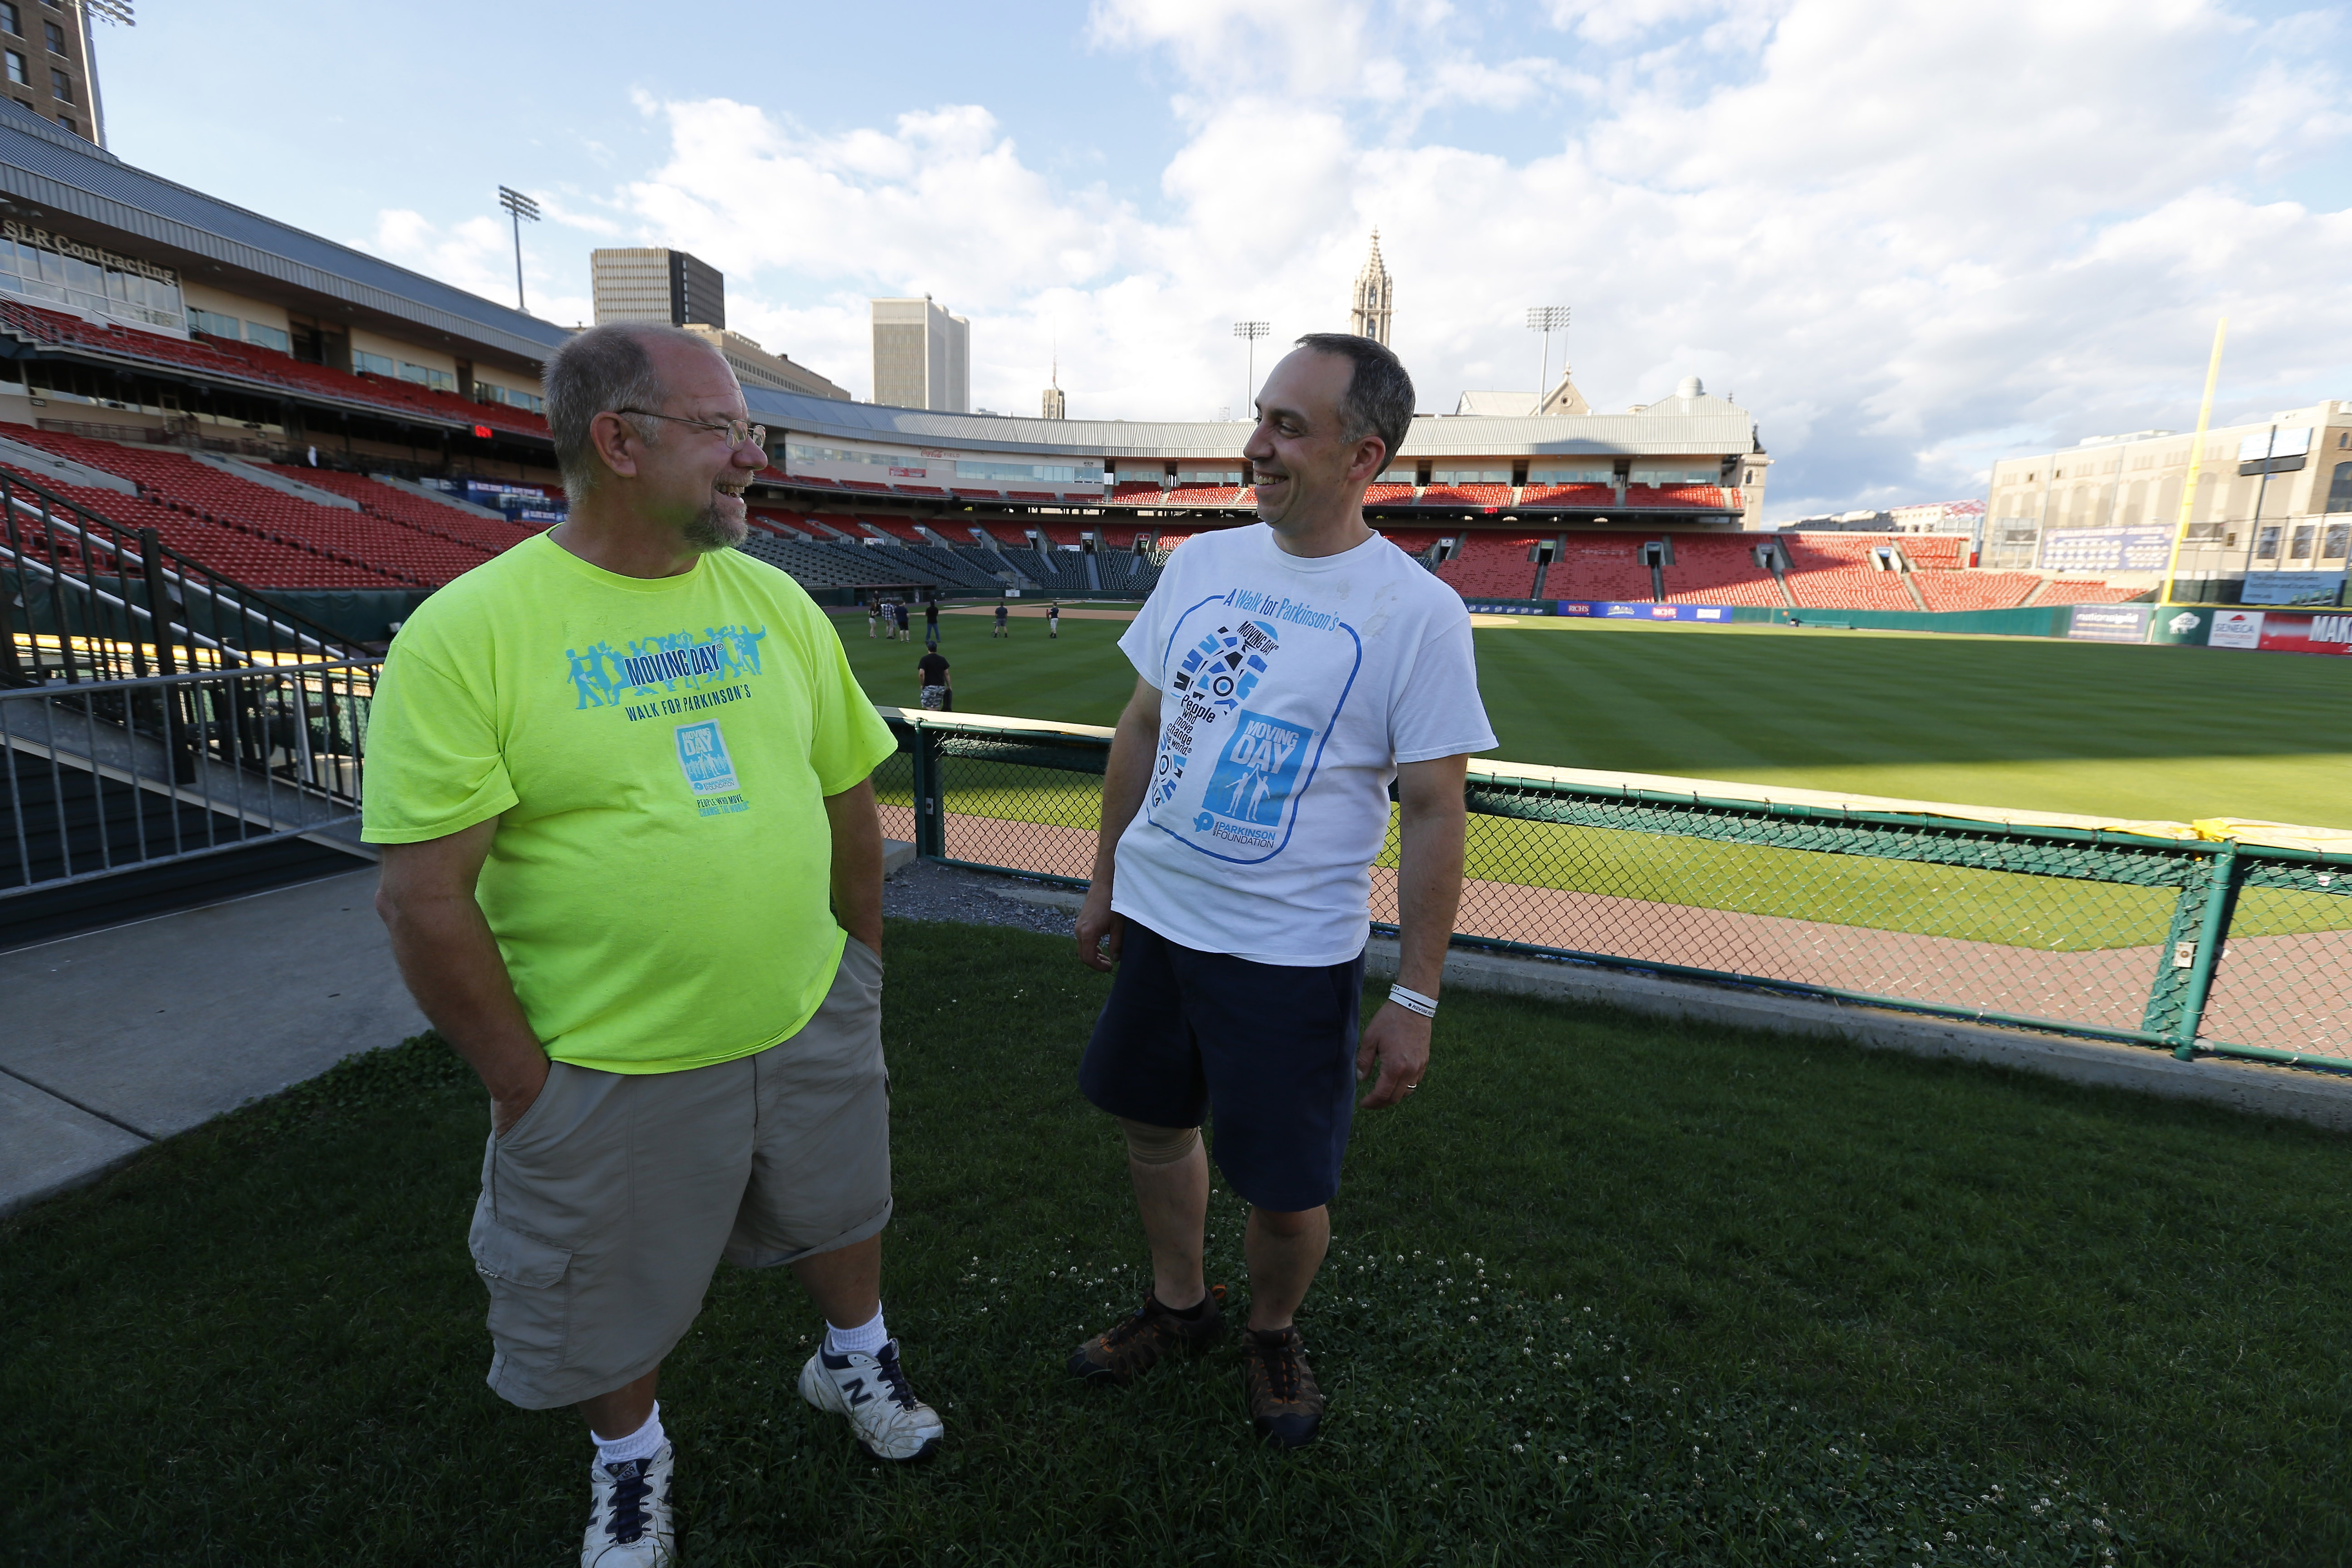 """Robert """"Bob"""" Russell, left, was the """"face"""" of Moving Day in 2015. He's with Jim Schaefer, who will be the """"face"""" of this year's Moving Day event on Sept. 11 at Coca Cola Field. (Mark Mulville/Buffalo News)"""